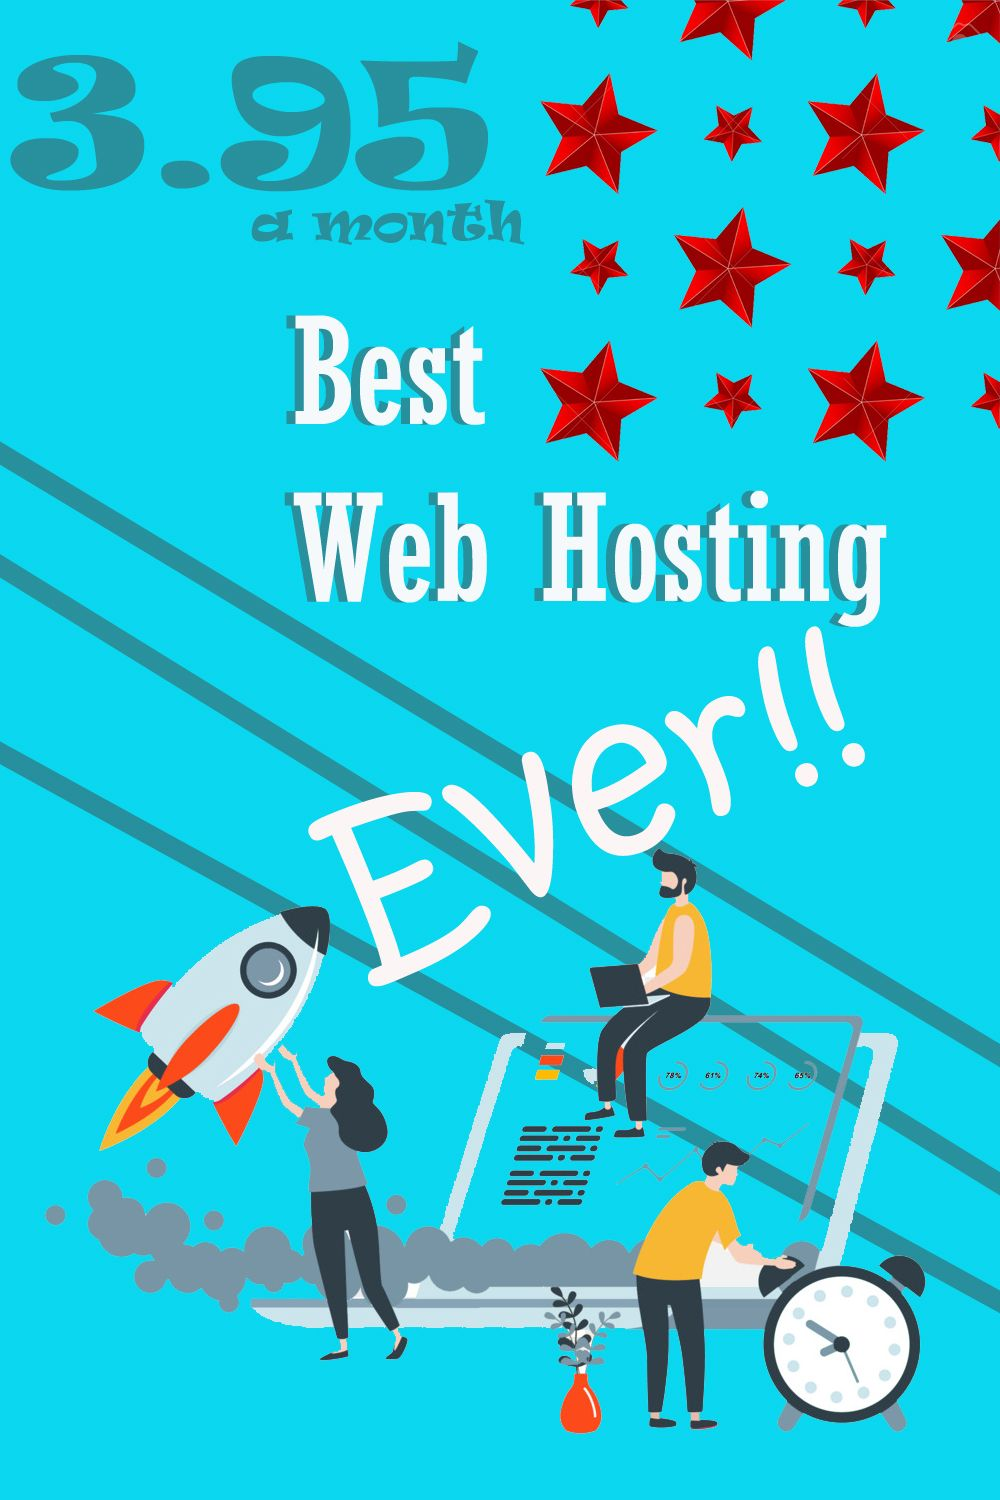 Building Your Web Site On A Platform Who Gives You All The Freedom